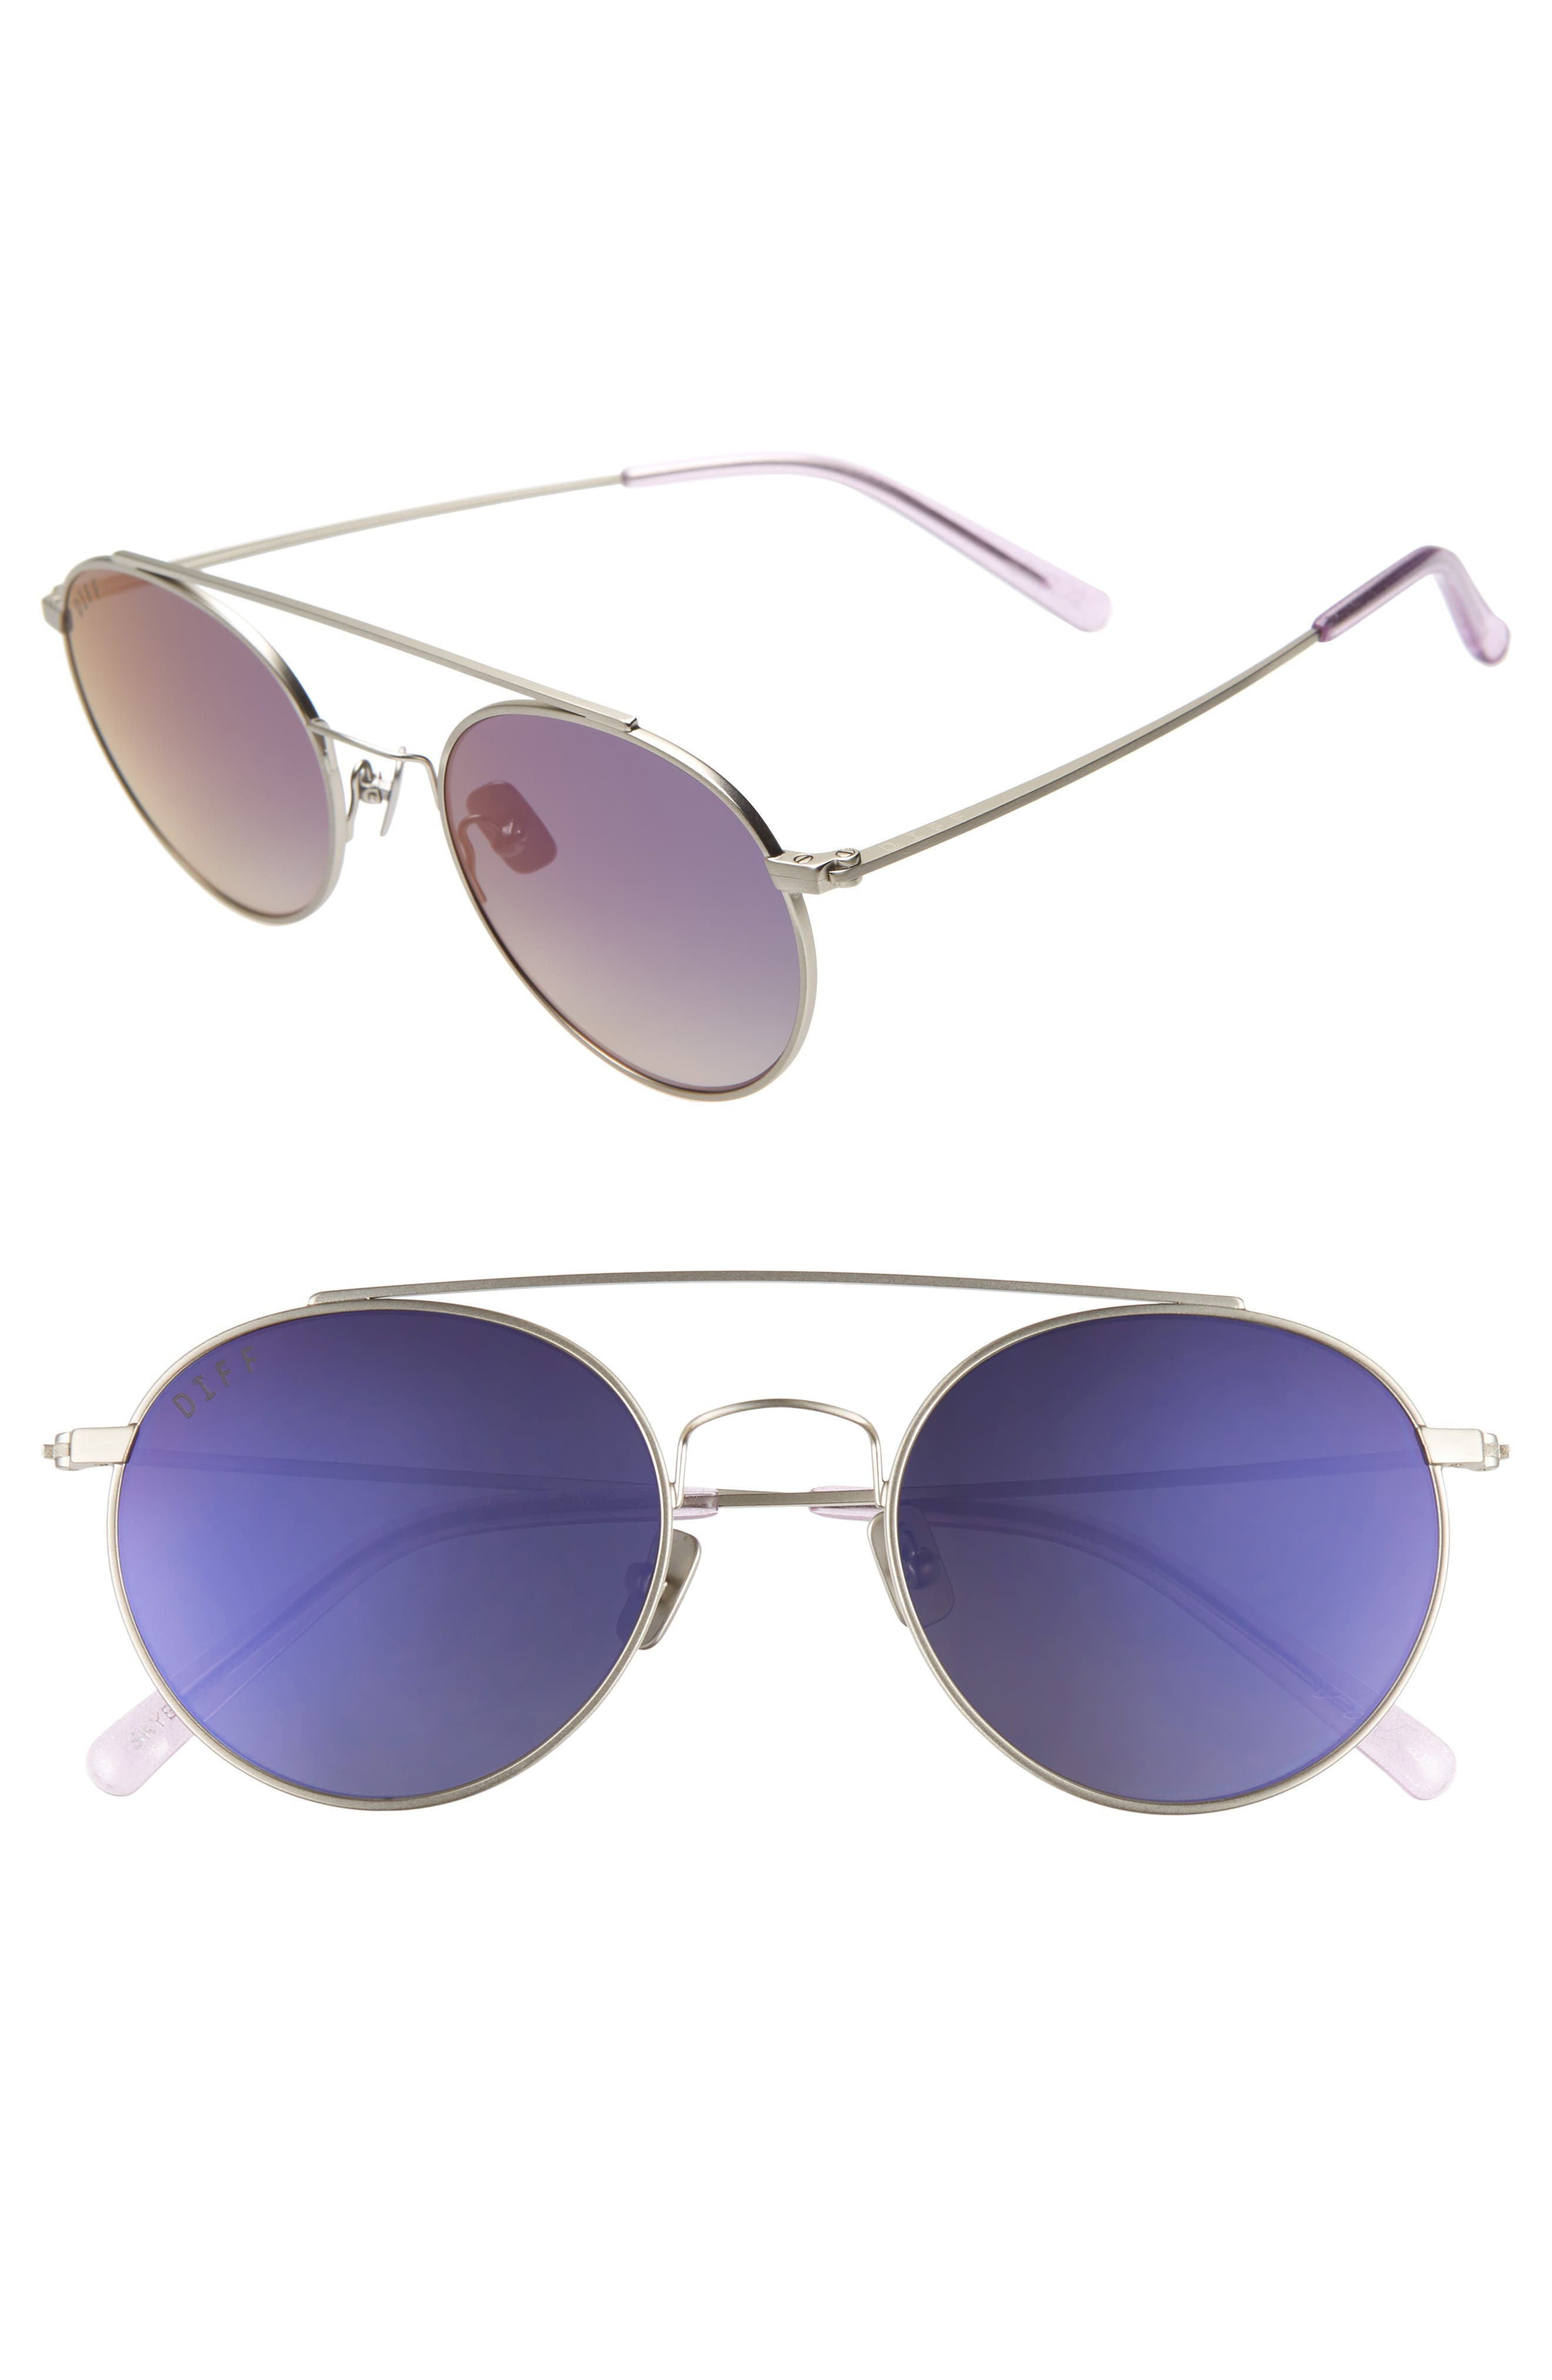 x Jessie James Decker Skye 52mm Polarized Round Sunglasses,                             Main thumbnail 1, color,                             BRUSHED SILVER/ PURPLE